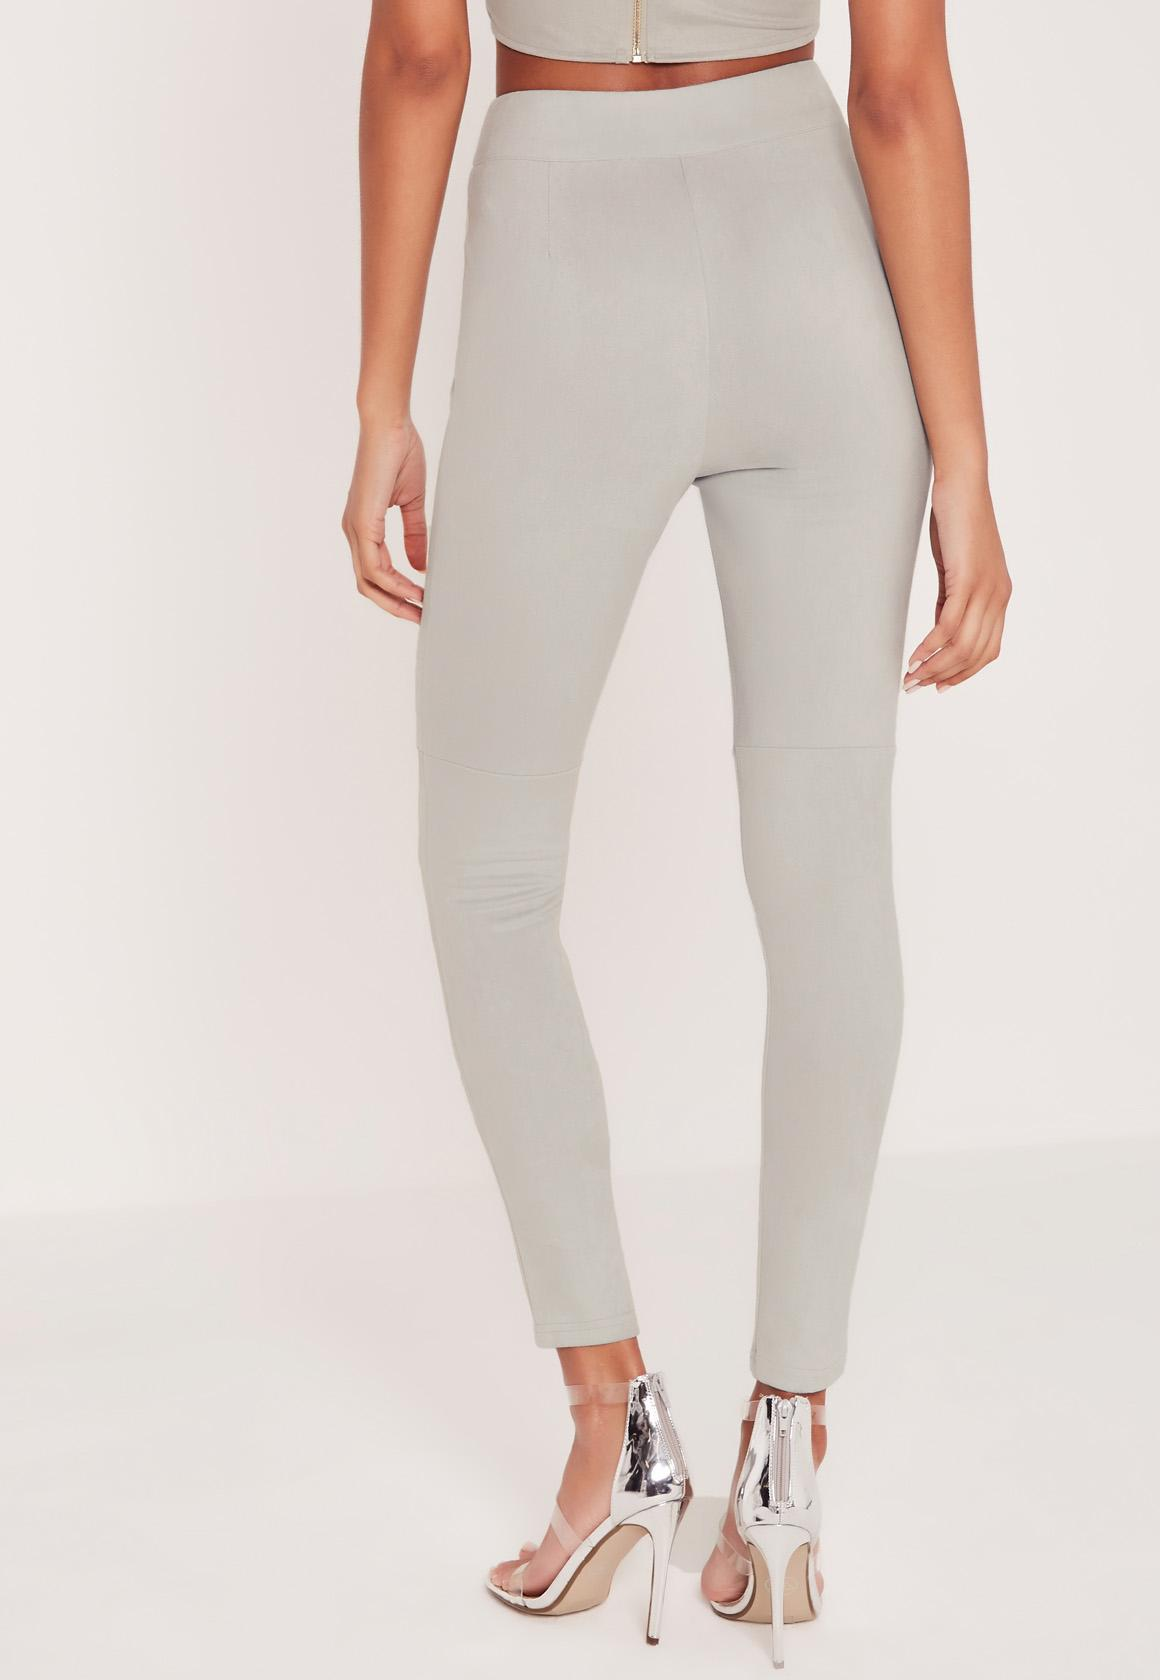 f8f67d3530504b Missguided Carli Bybel Faux Suede Panel Leggings Grey at £9 | love ...